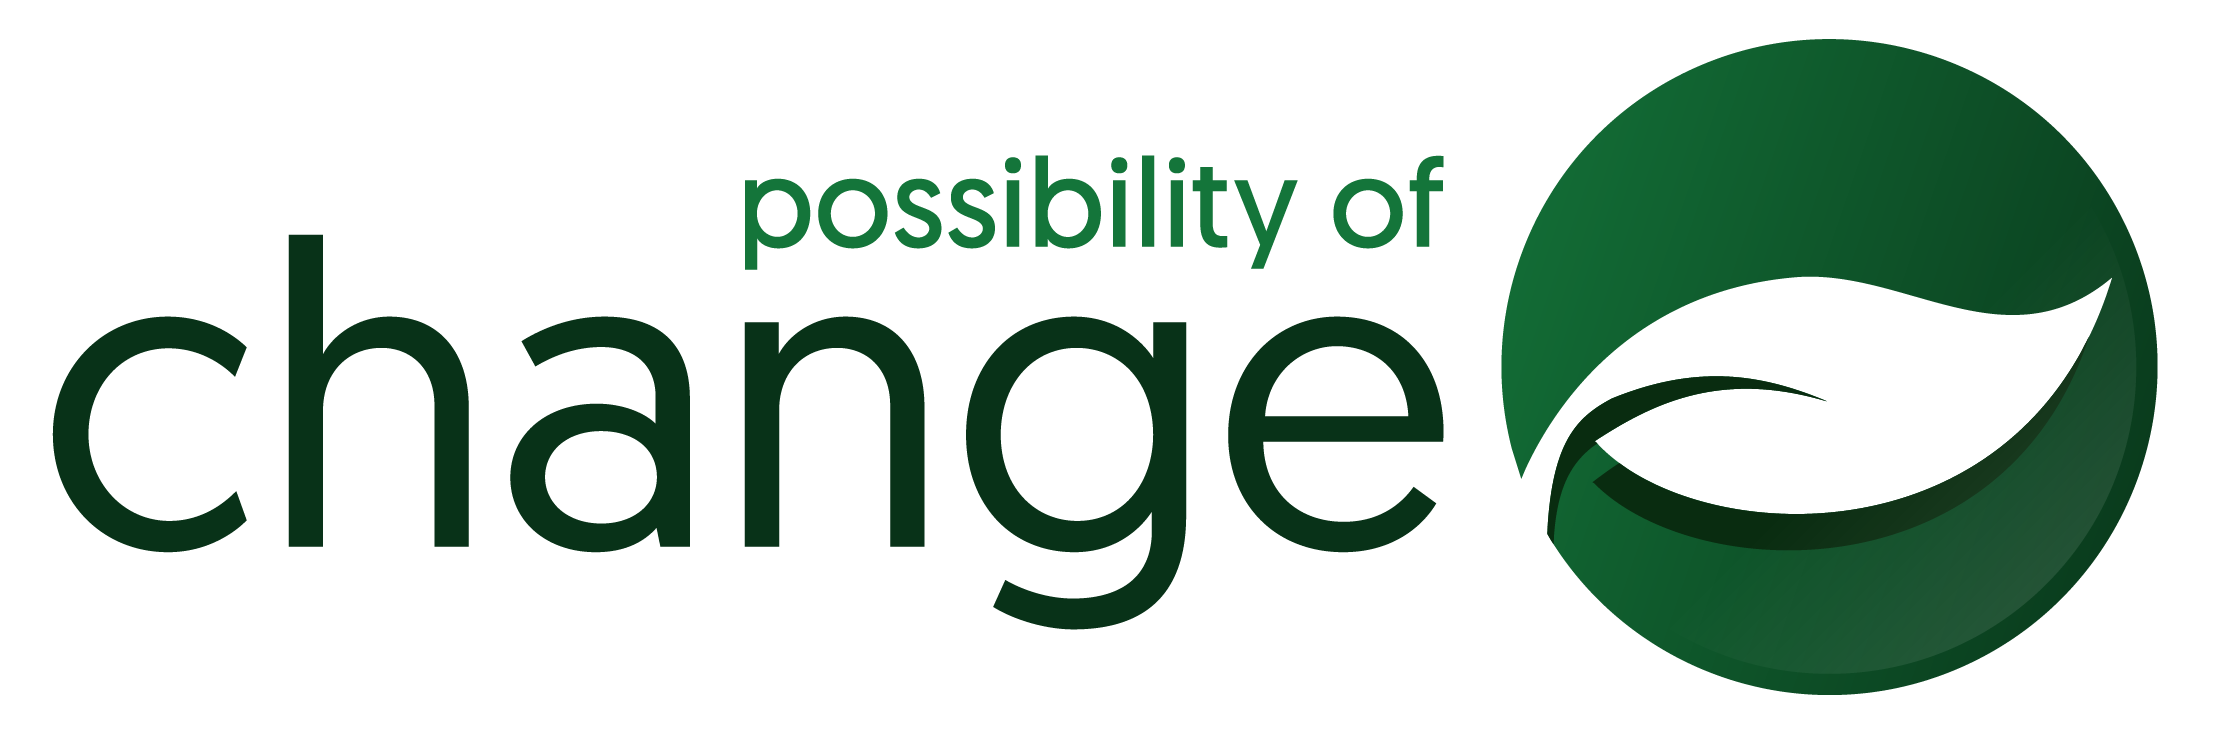 Possibility of Change Logo